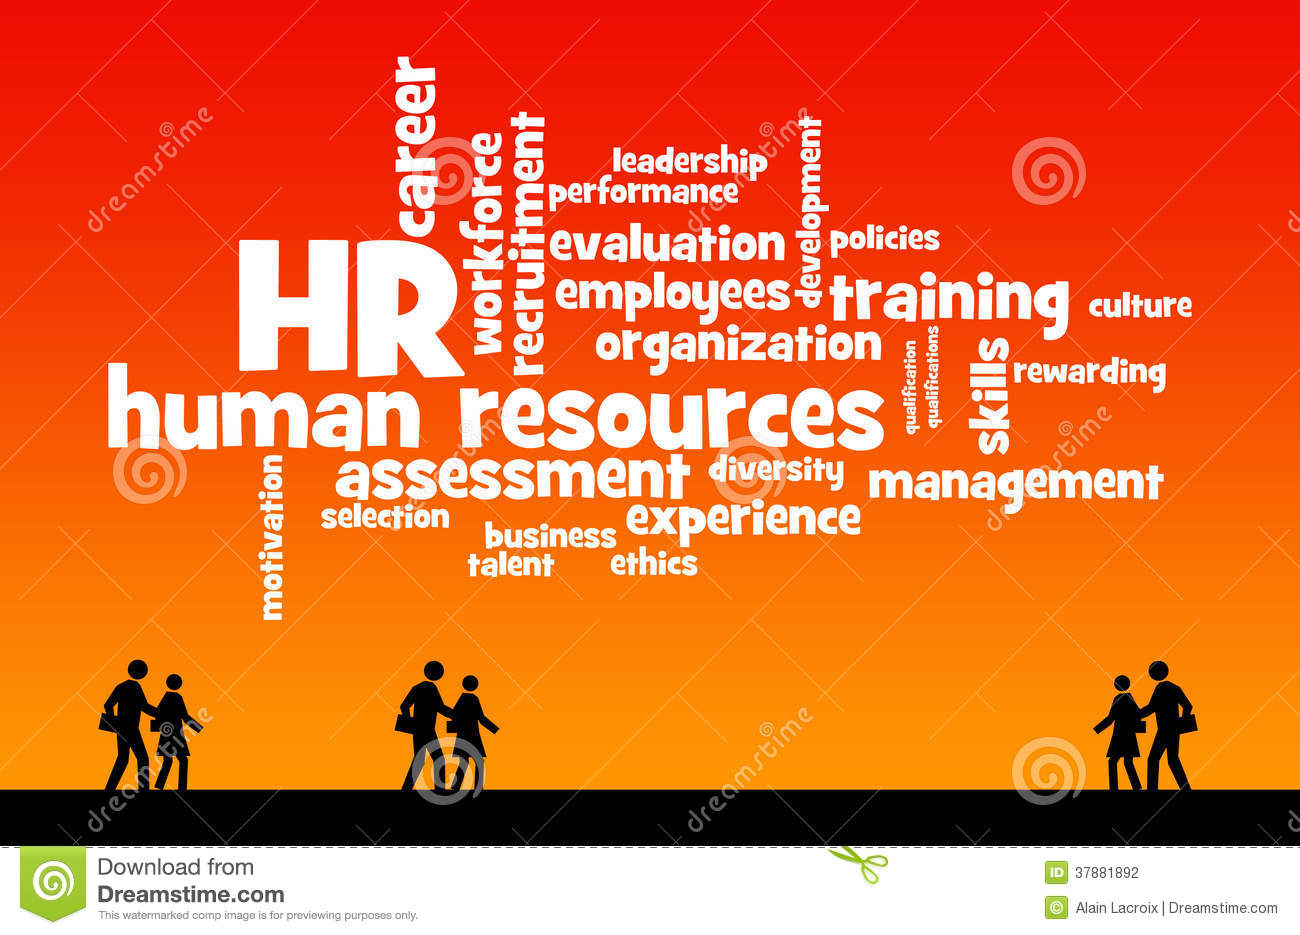 is hr important Recruitment and selection recruitment is one of the most important parts of hr, as if you get this process right you're halfway there, as you have minimised any potential employee's issues that can arise in future.